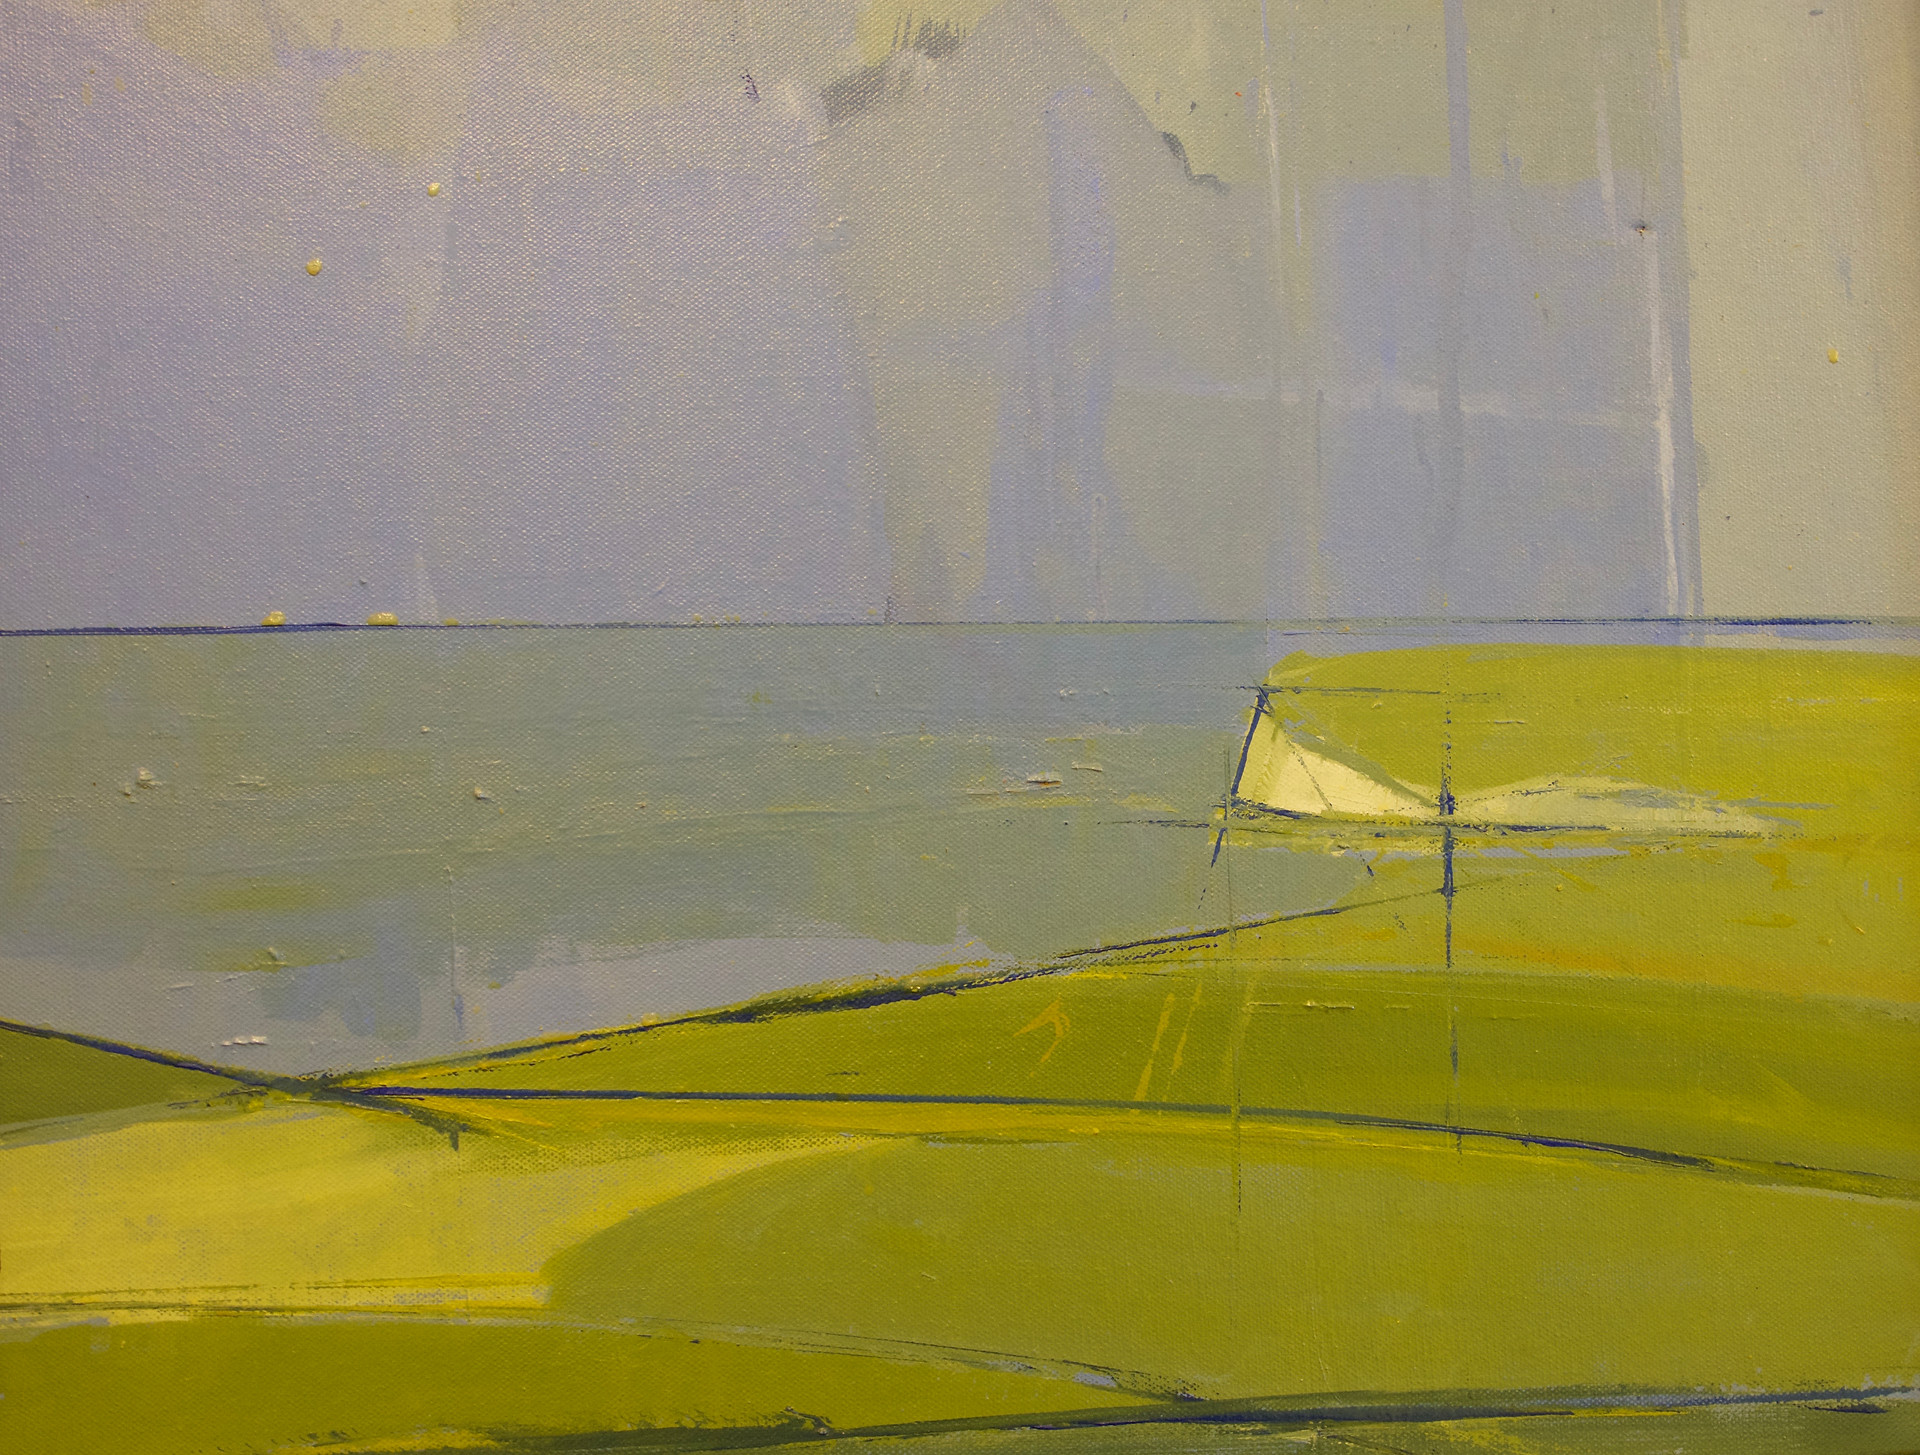 Across the downs | c.2011 | Oil on canvas | 45 x 55 cm